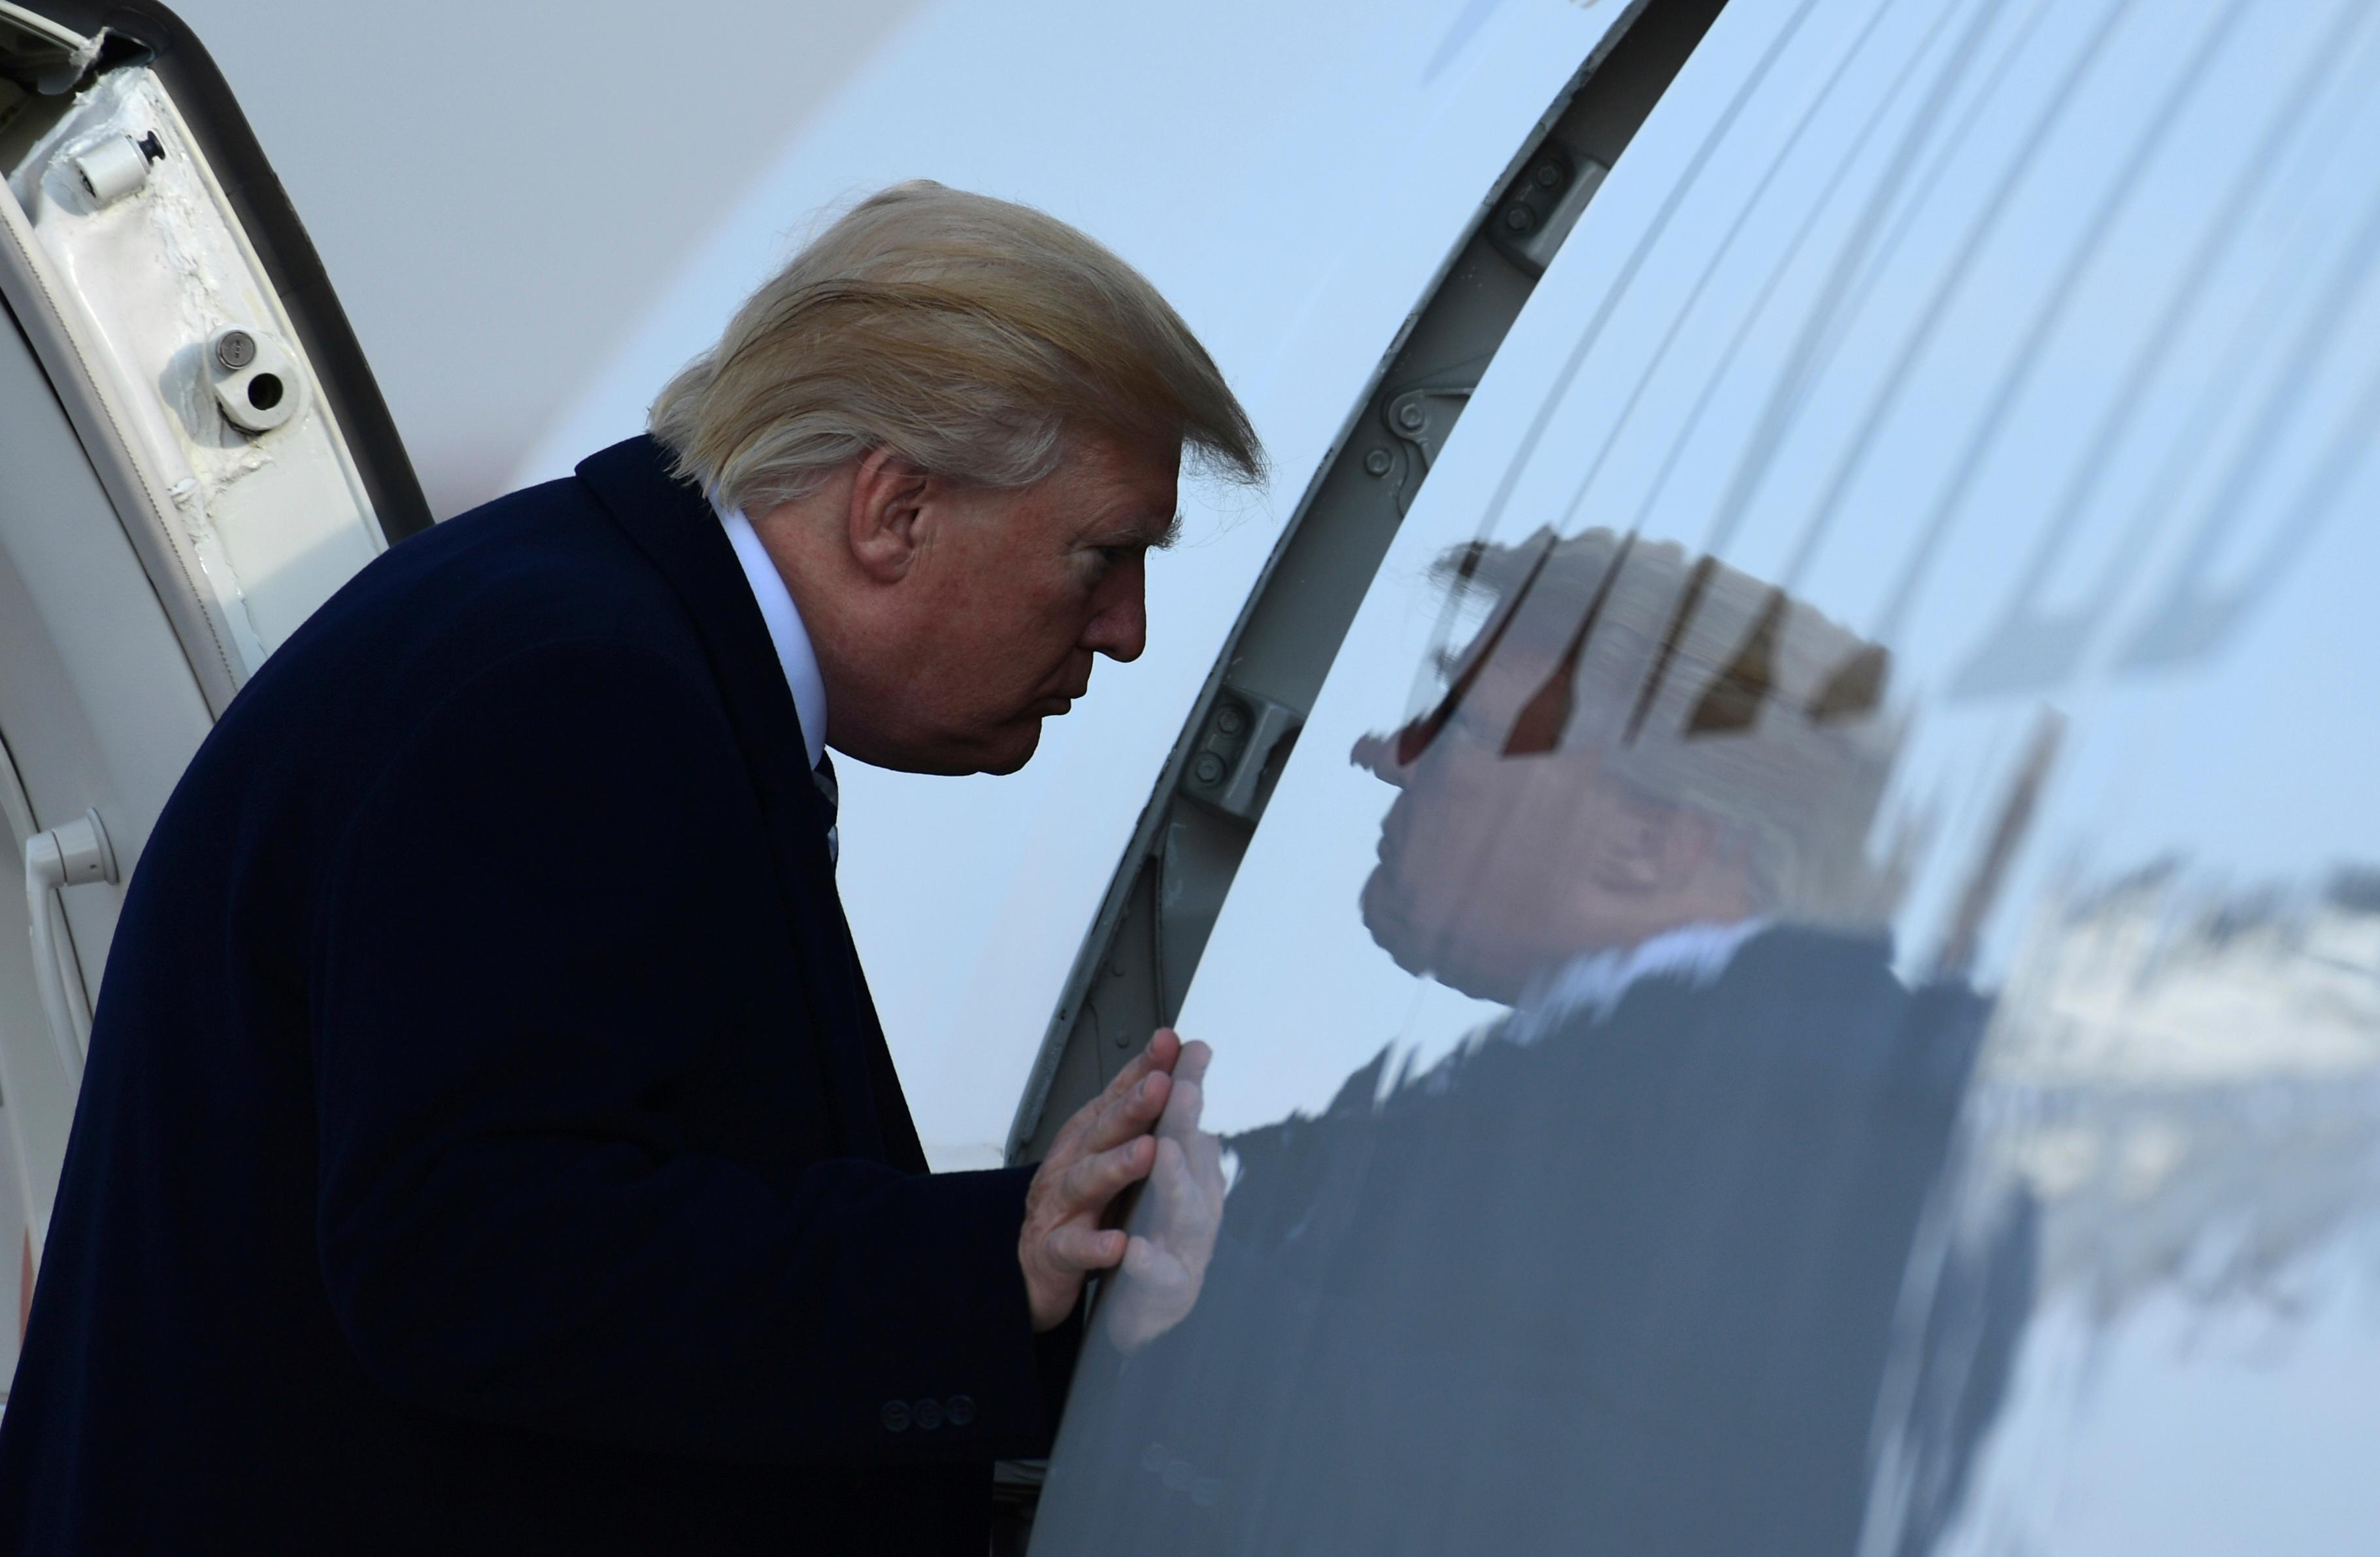 President Donald Trump walks up the steps of Air Force One at Andrews Air Force Base in Md., Saturday, Dec. 2, 2017. Trump is heading to New York to attend Republican fundraisers. (AP Photo/Susan Walsh)